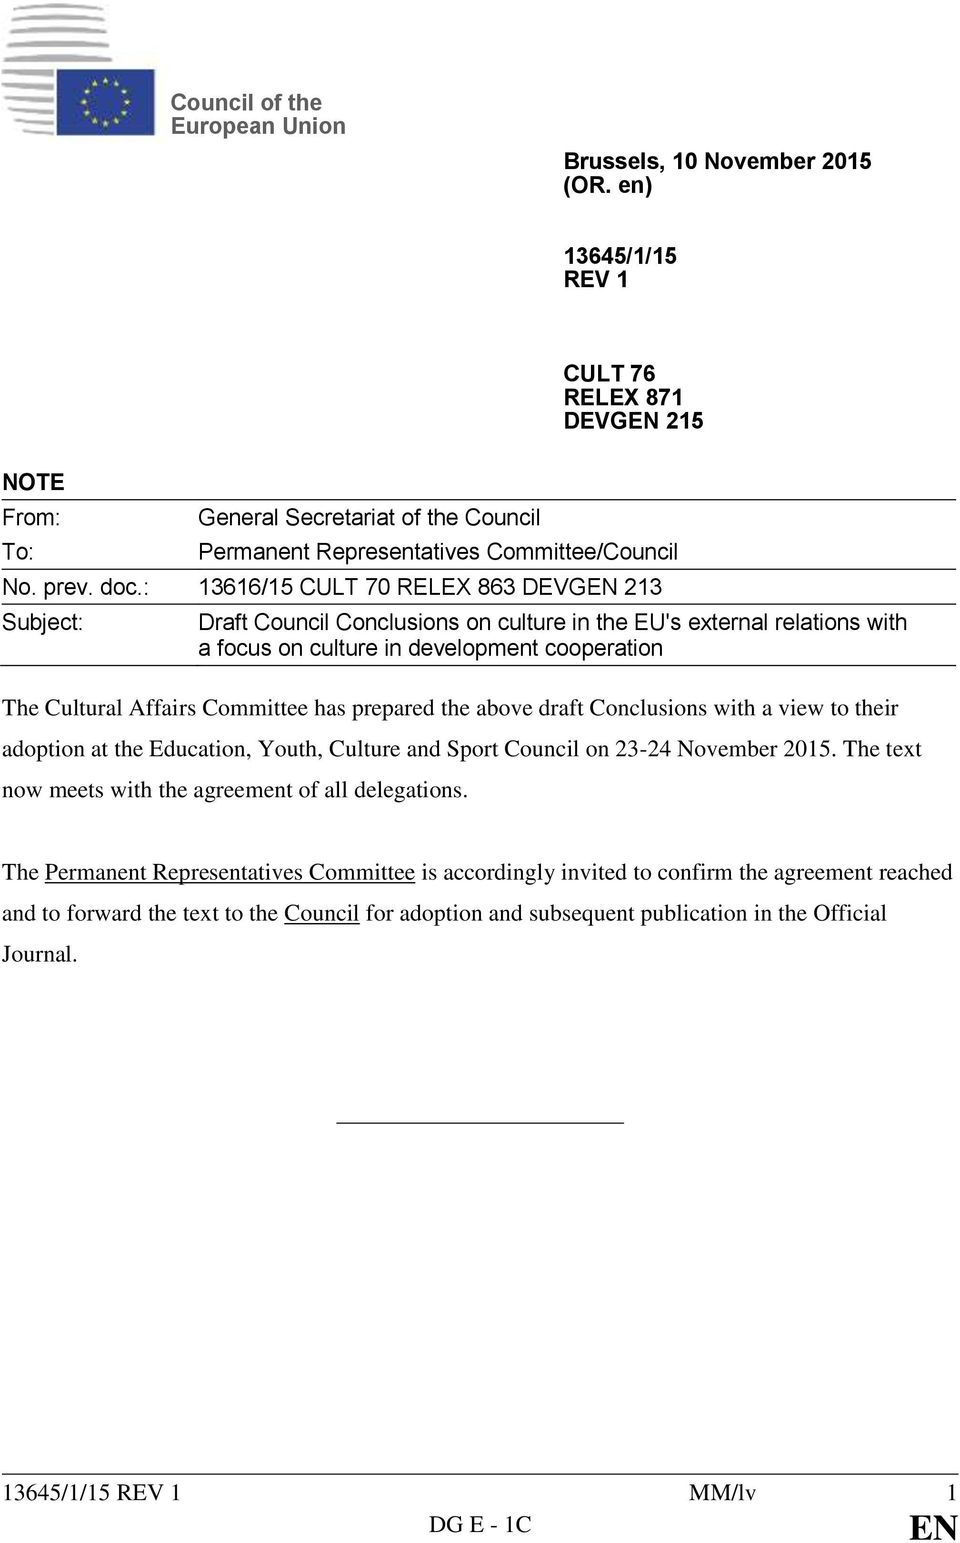 : 13616/15 CULT 70 RELEX 863 DEVG 213 Subject: Draft Council Conclusions on culture in the EU's external relations with a focus on culture in development cooperation The Cultural Affairs Committee